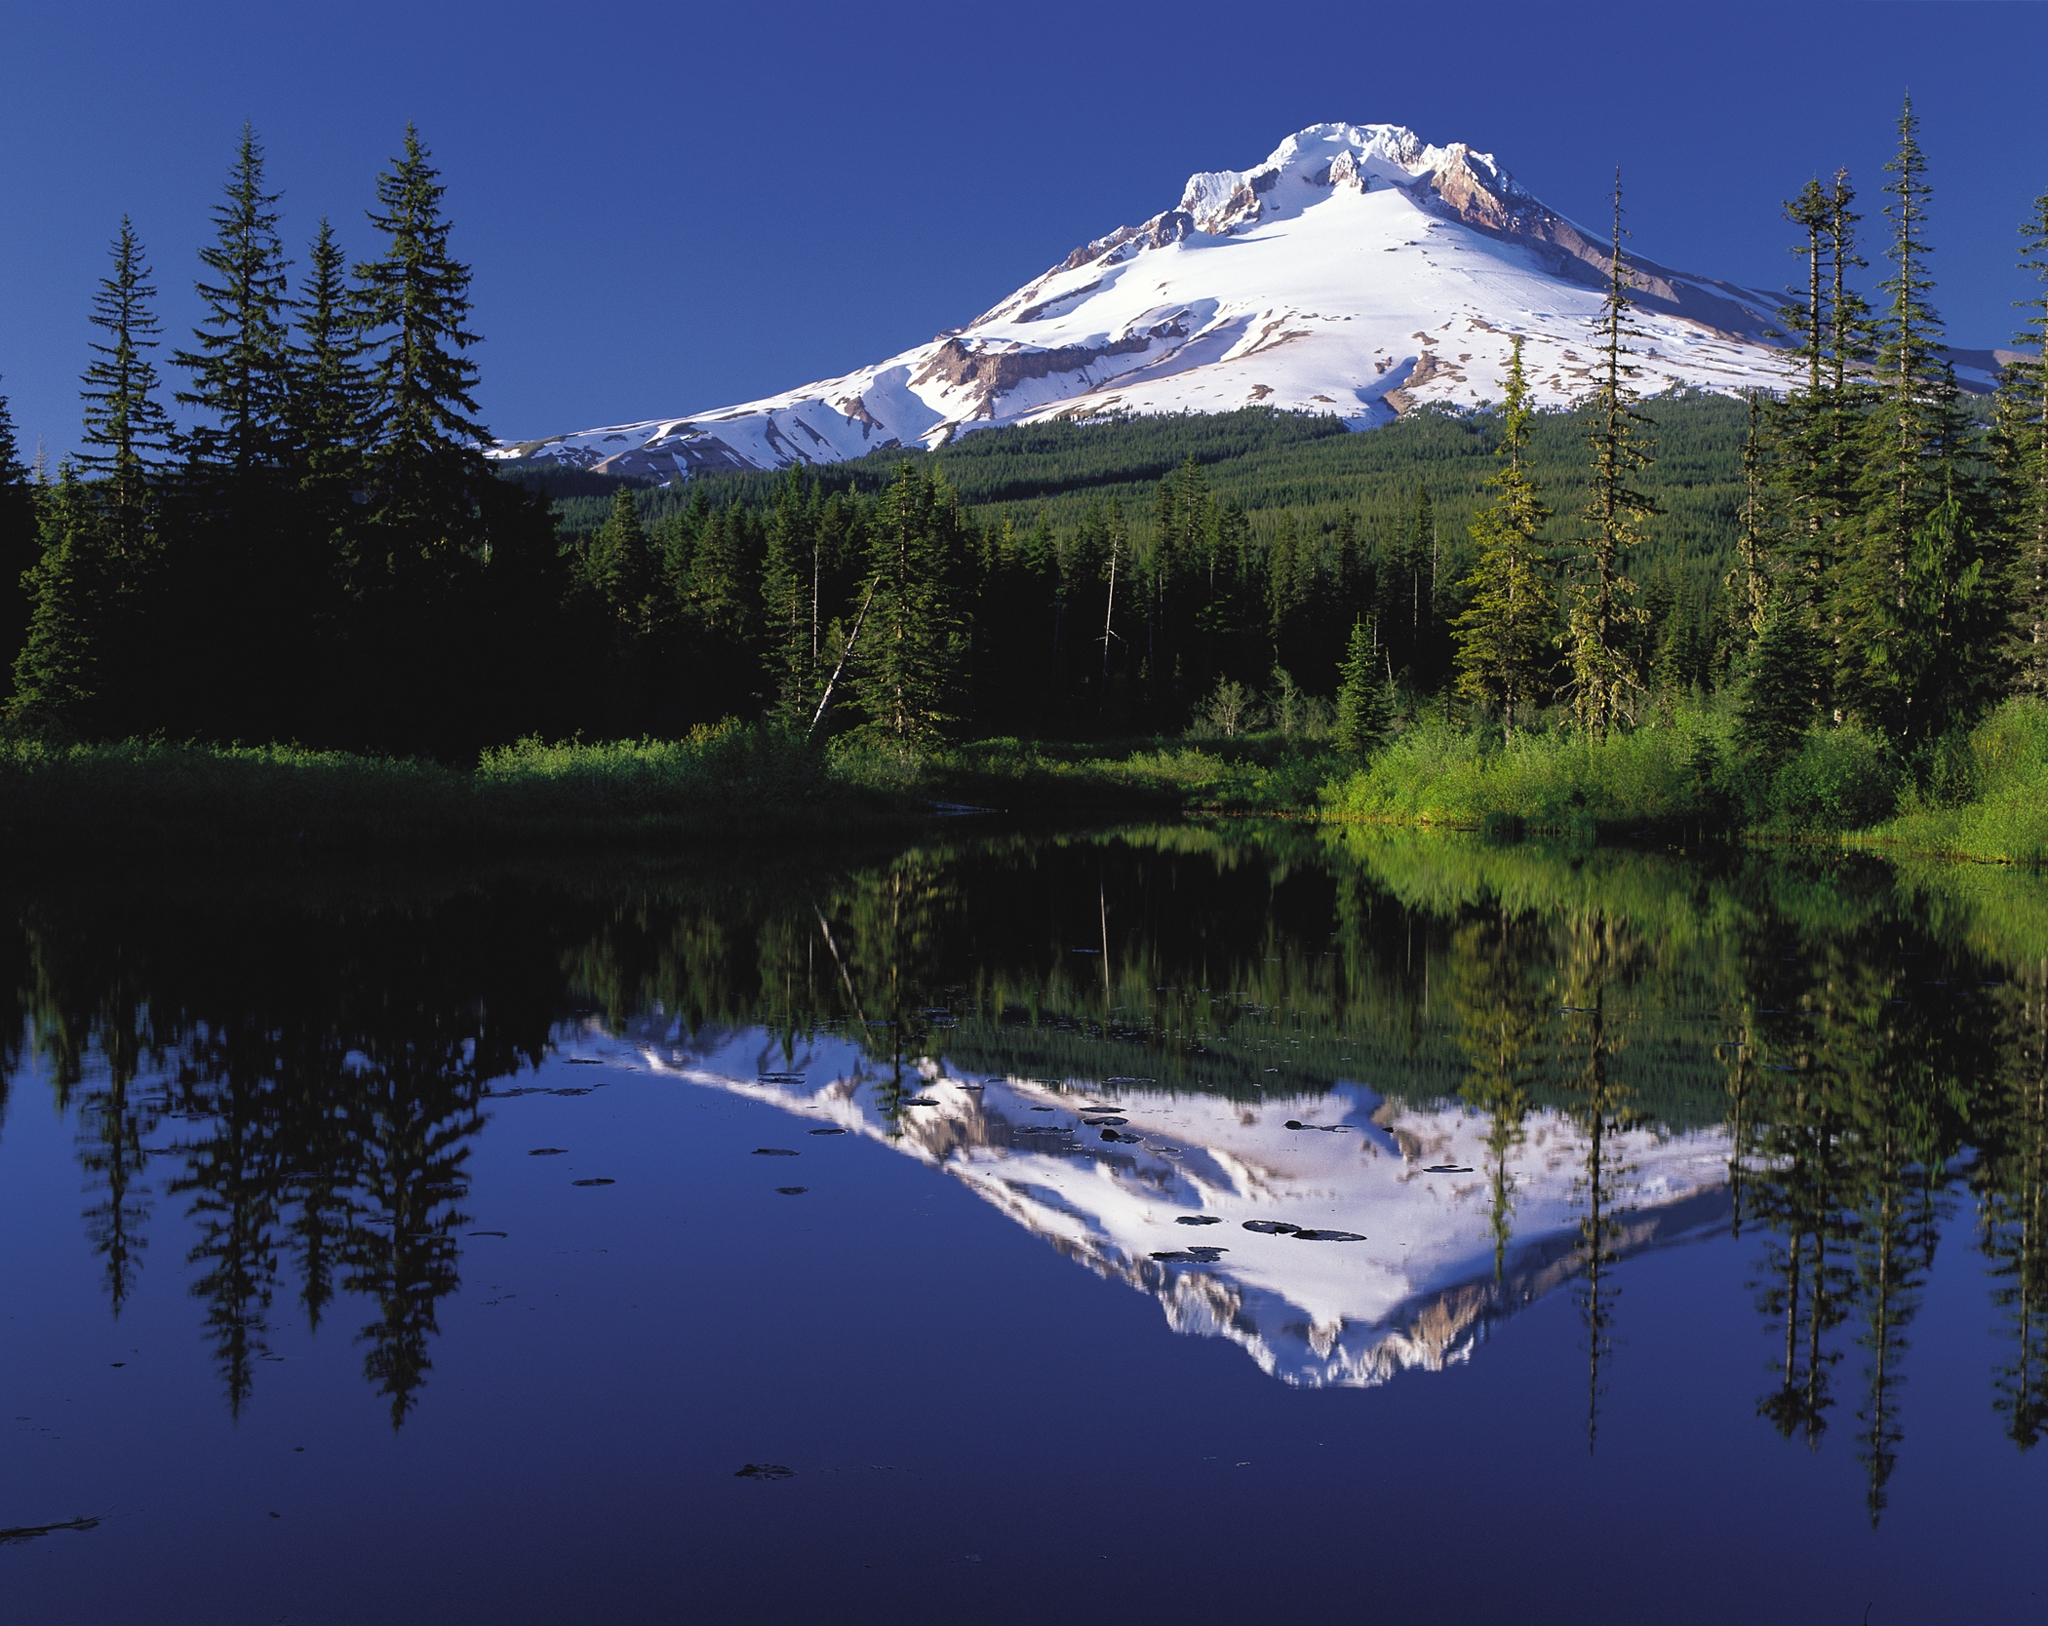 Mount_Hood_reflected_in_Mirror_Lake,_Oregon.jpg (2048×1626)